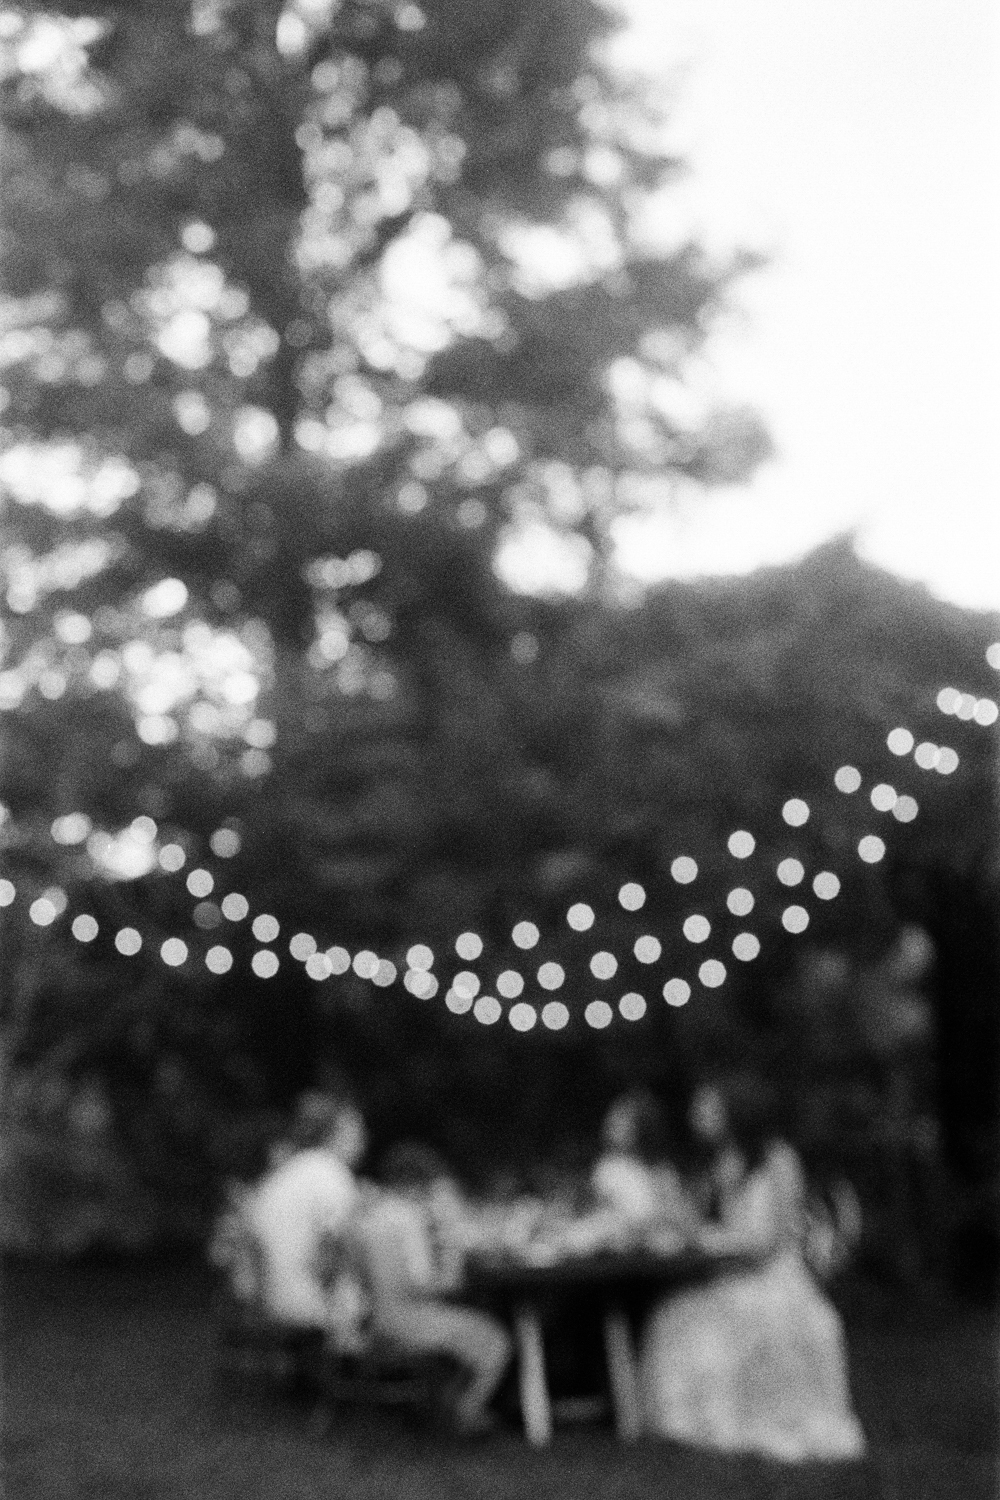 Rehearsal-dinner-photographer-film-photography-christine-gosch-texas-destination-pentax645n-medium-format-fuji400h-ilford-delta-3200-20.jpg